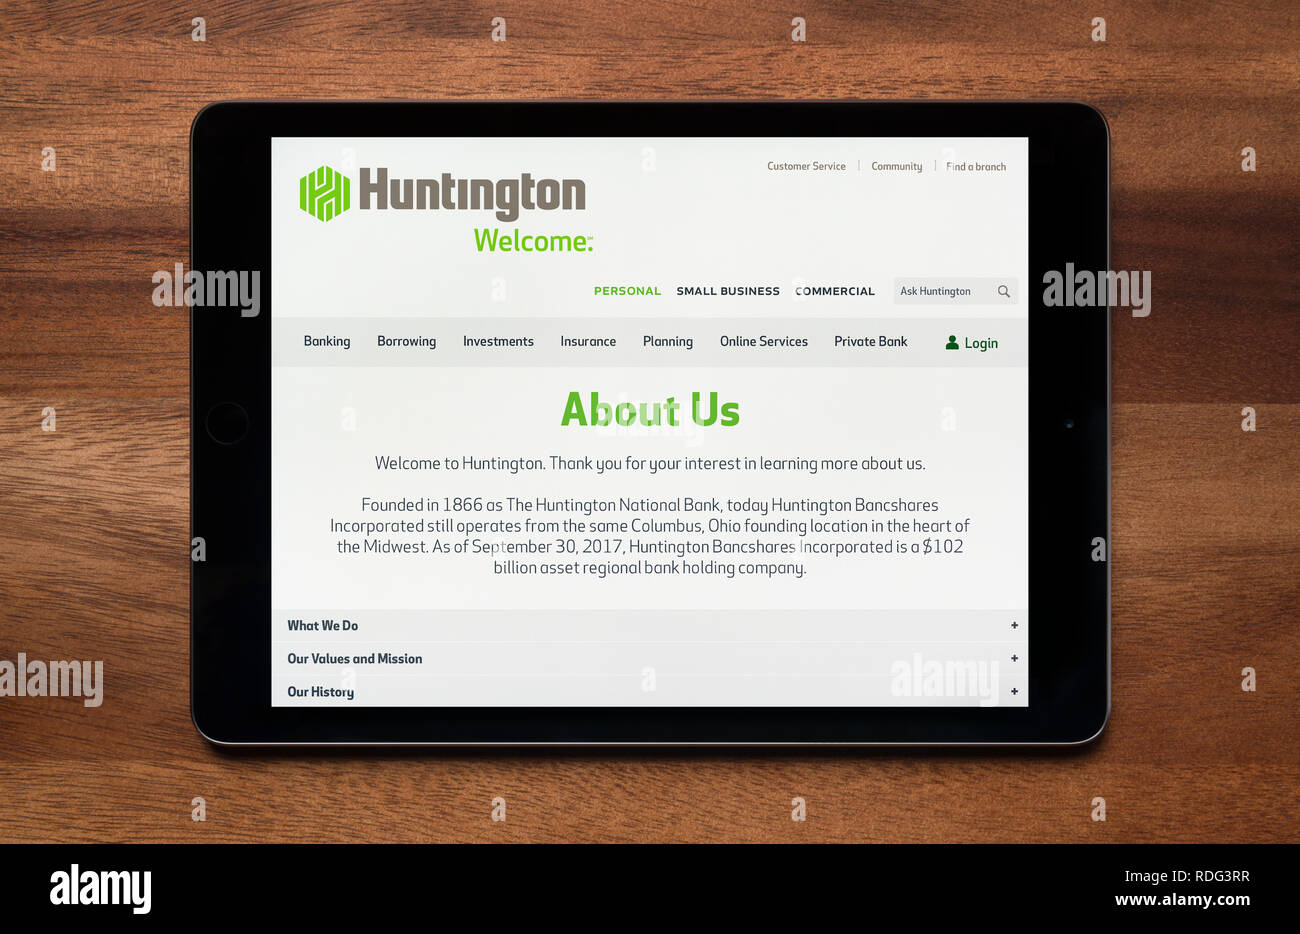 The website of Huntington Bancshares is seen on an iPad tablet, which is resting on a wooden table (Editorial use only). - Stock Image